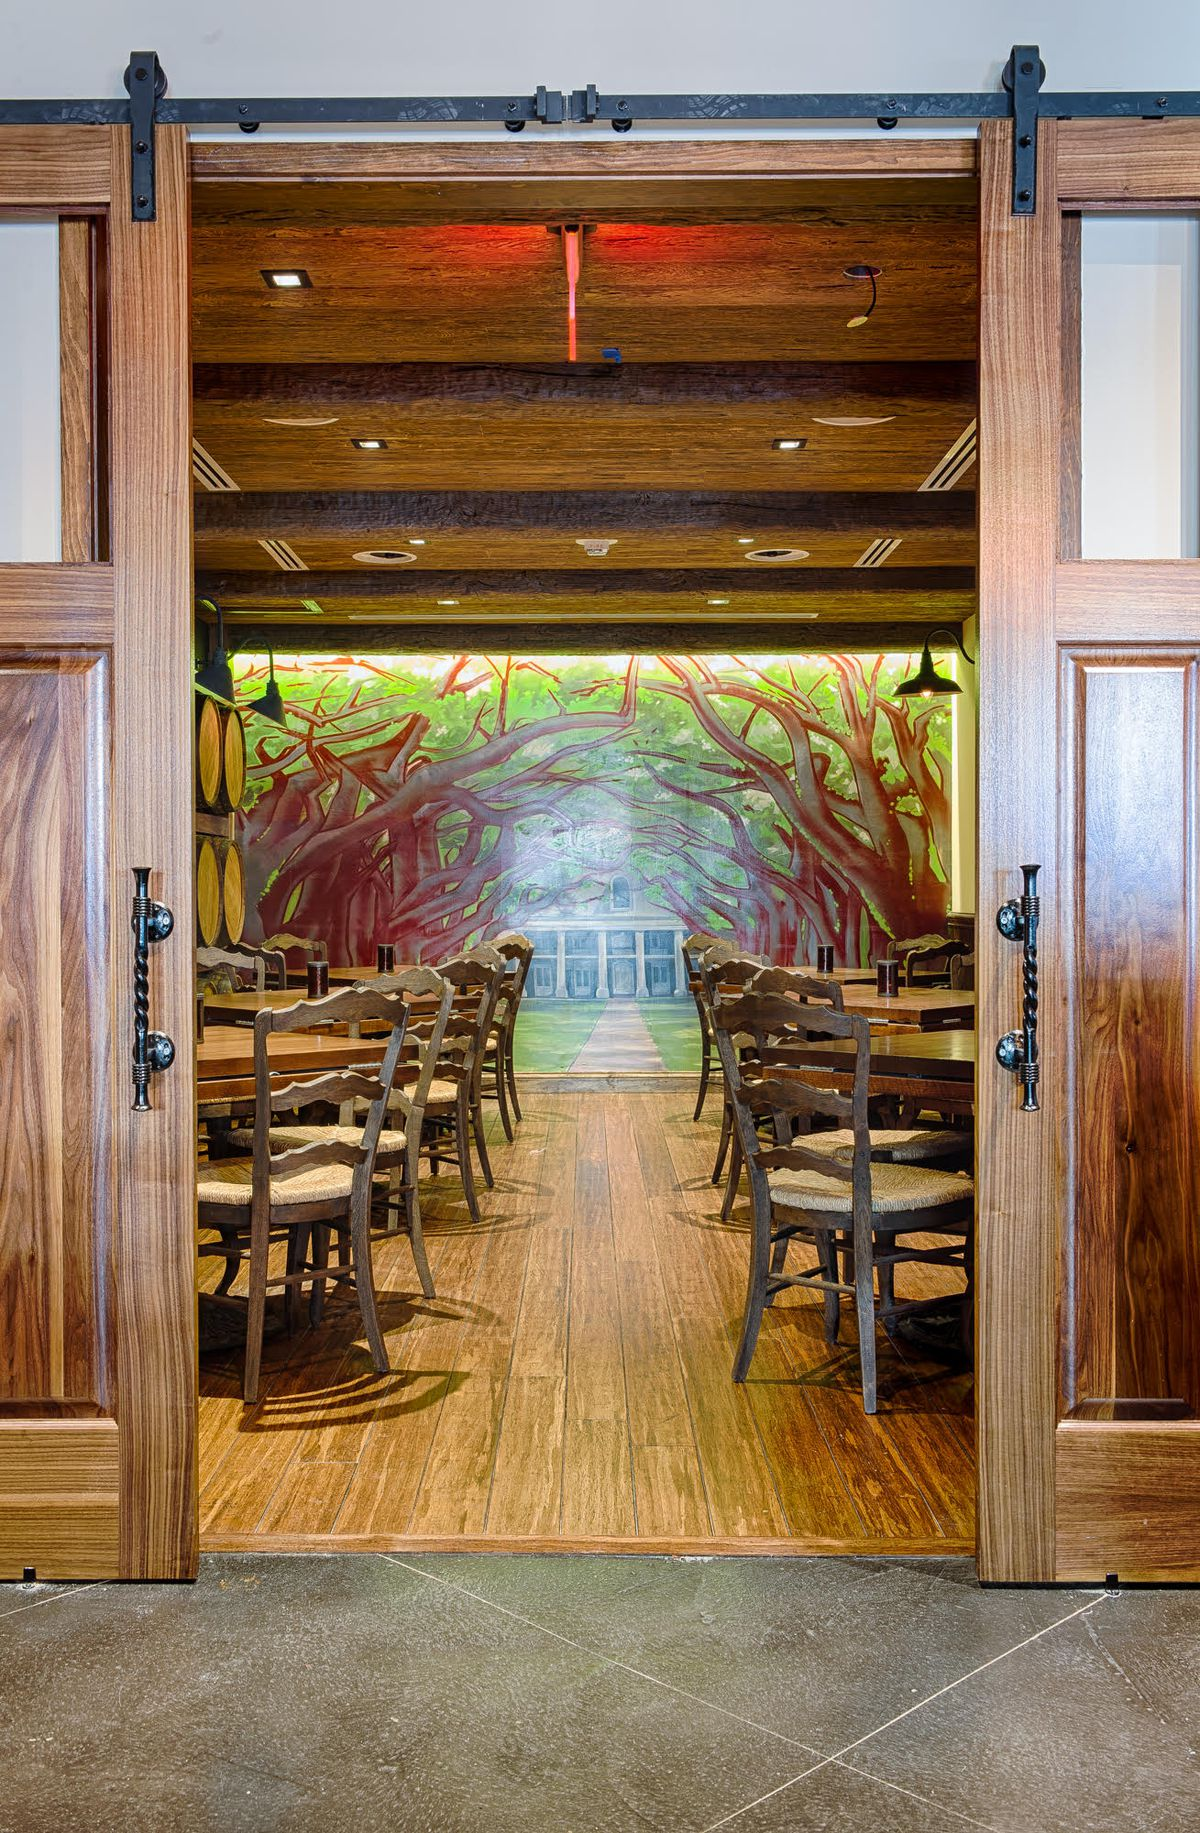 Mural in the private dining space.